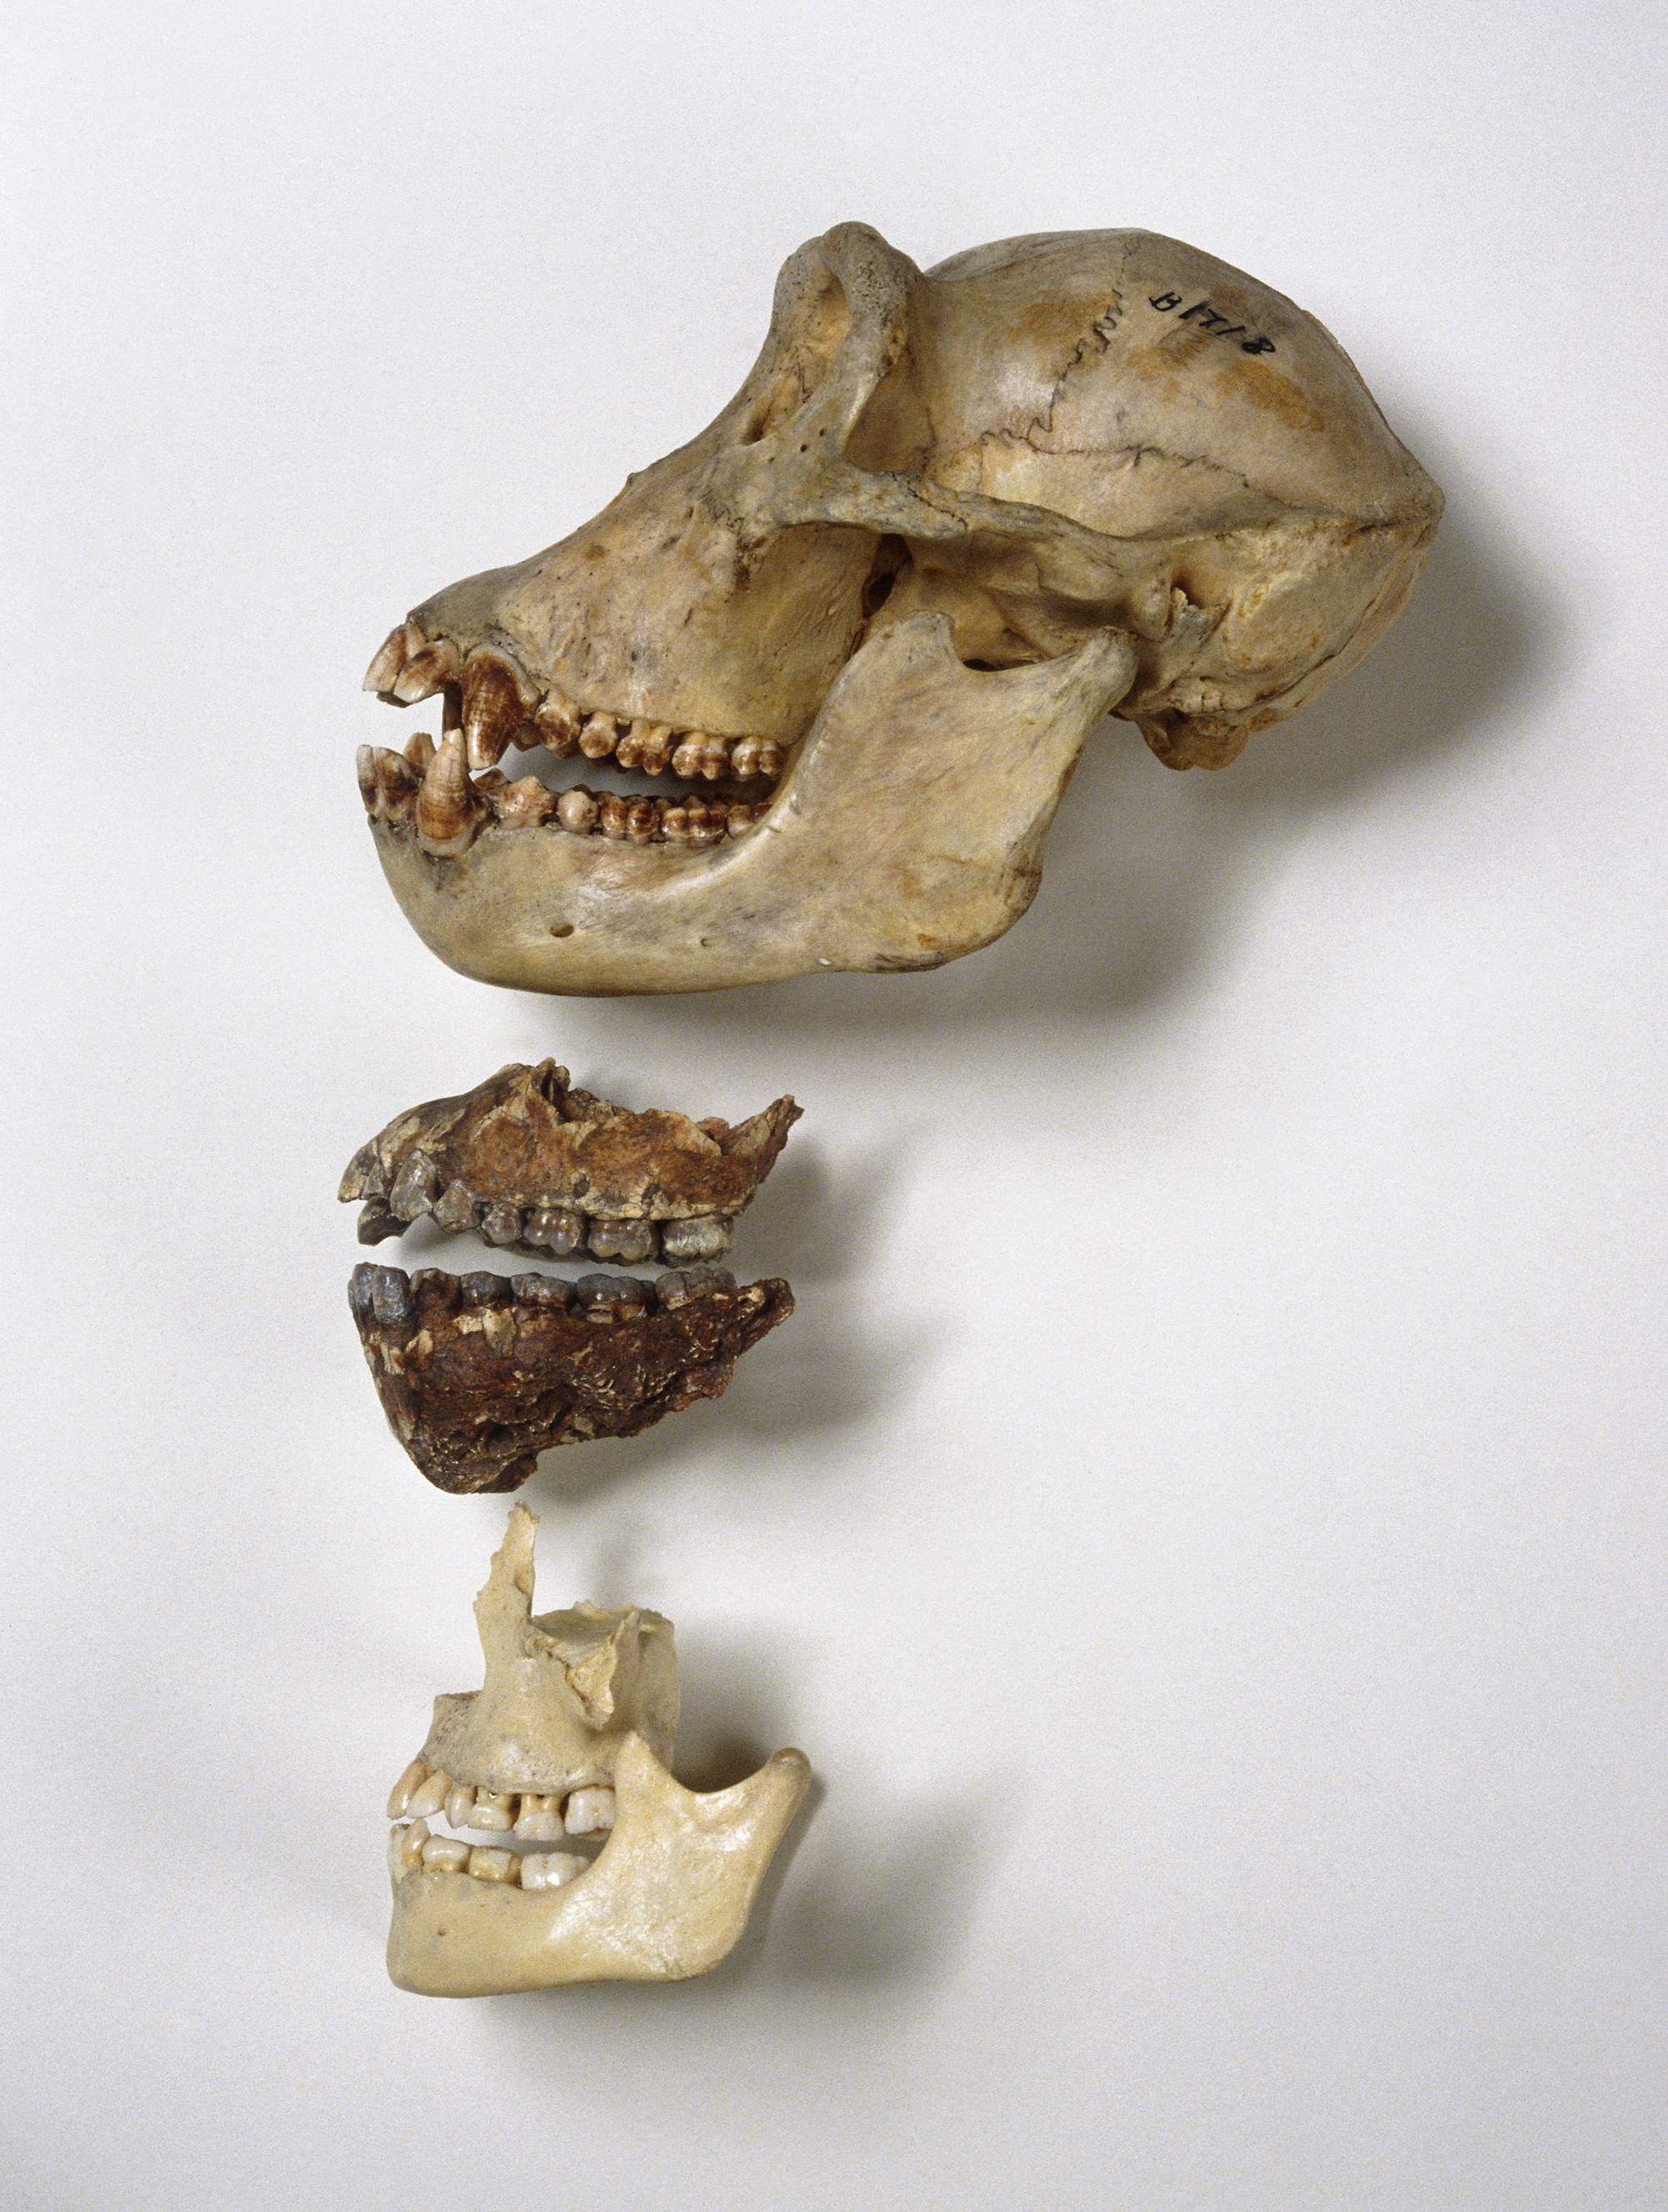 Chew On This: Slicing Meat Helped Shape Modern Humans